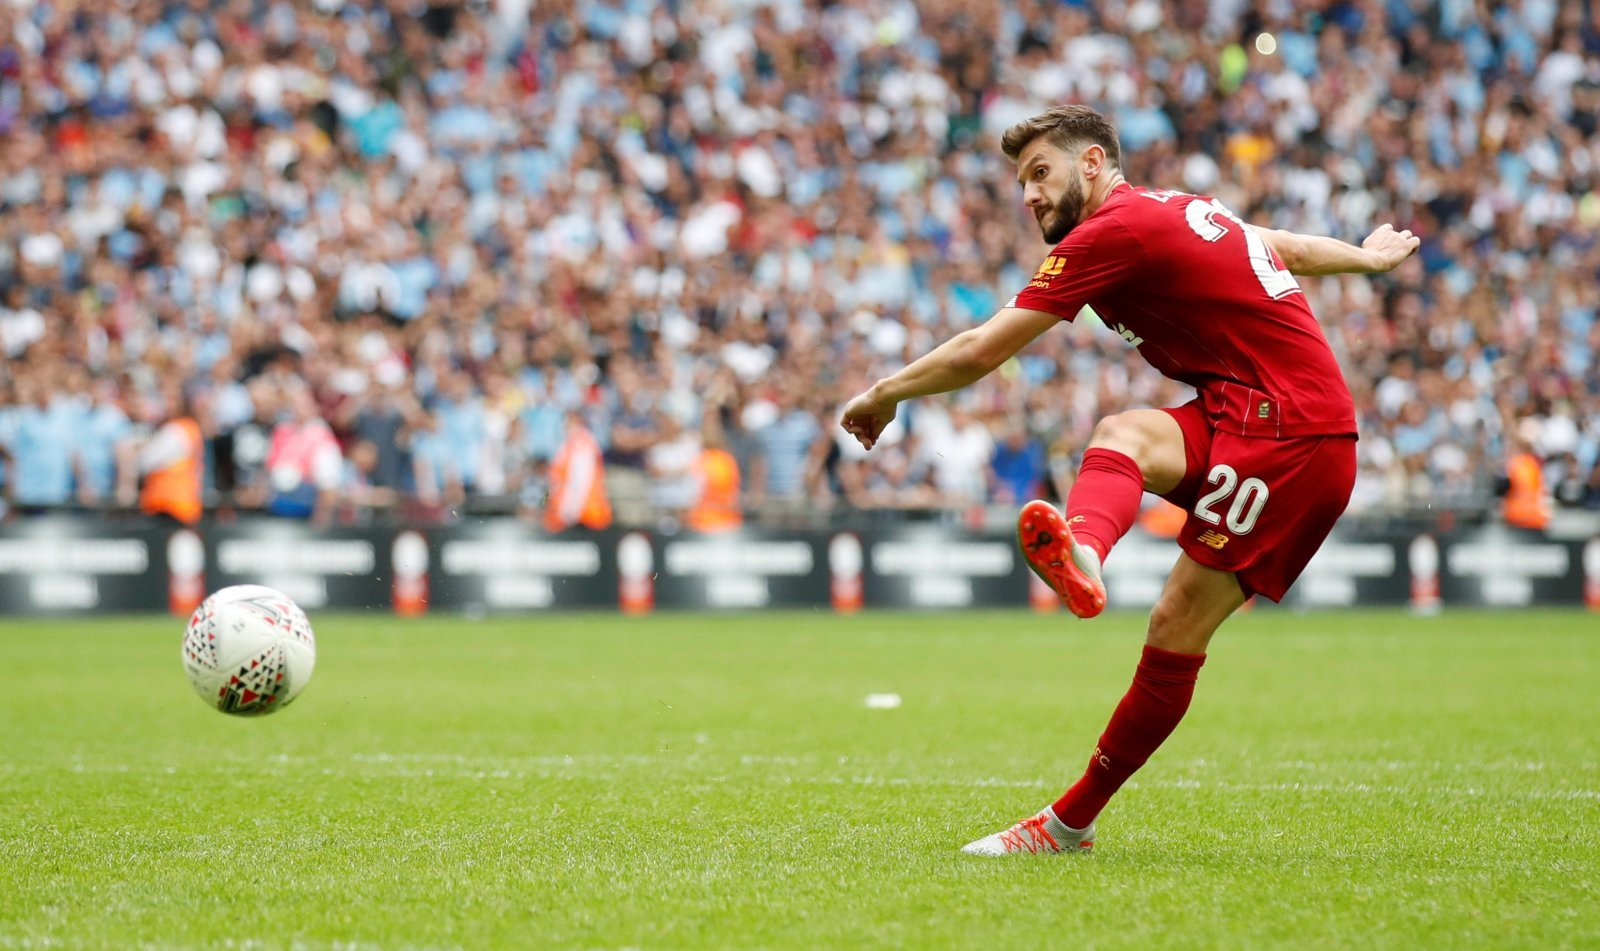 Liverpool: Fans disagree over Adam Lallana's performance in victory at Aston Villa